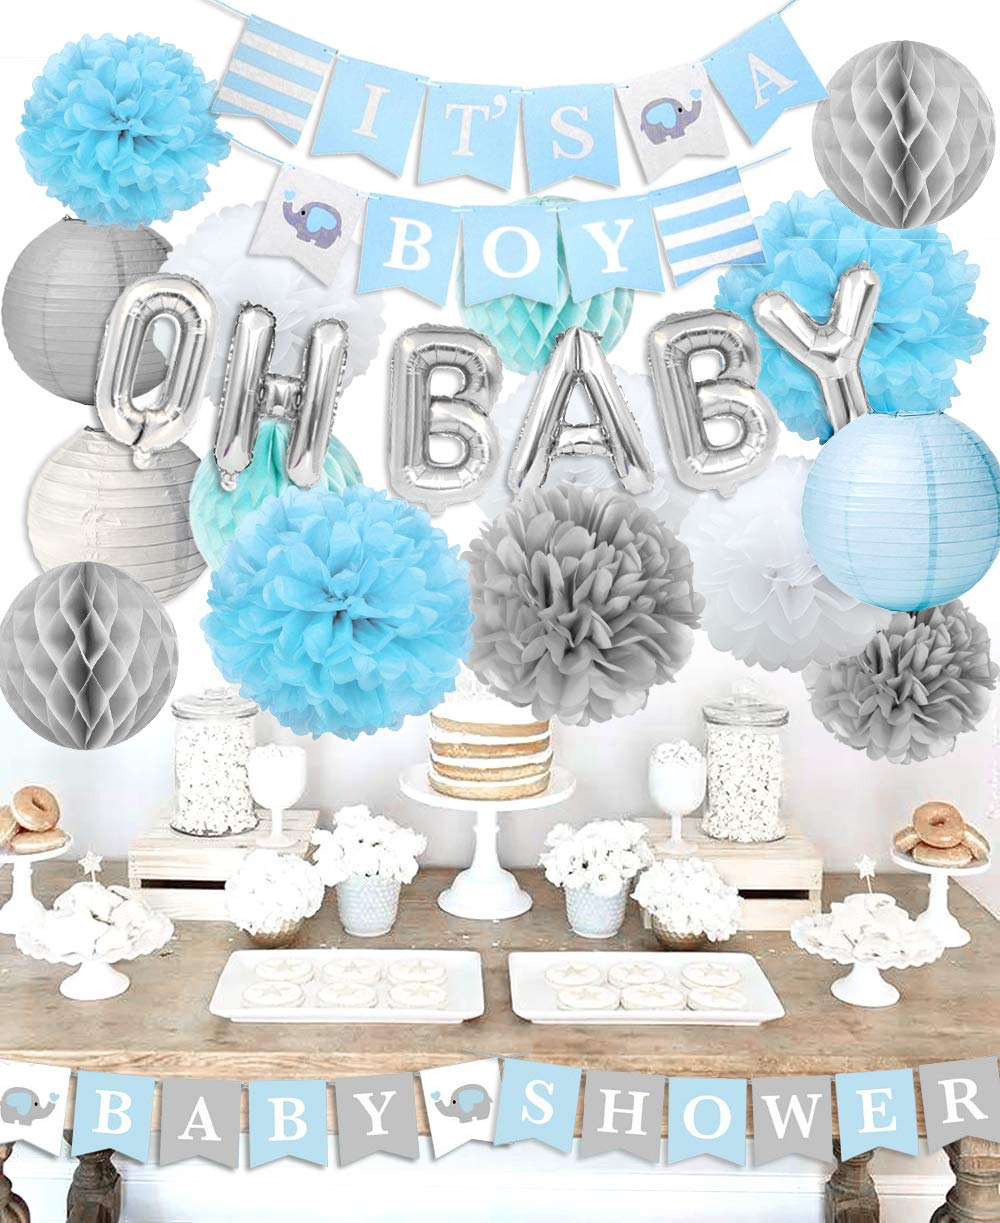 Boy Baby Shower Decorations - It's A Boy Baby Shower Decorations Kit with Oh Baby Balloons It's A Boy Baby Shower Banner KREATWOW